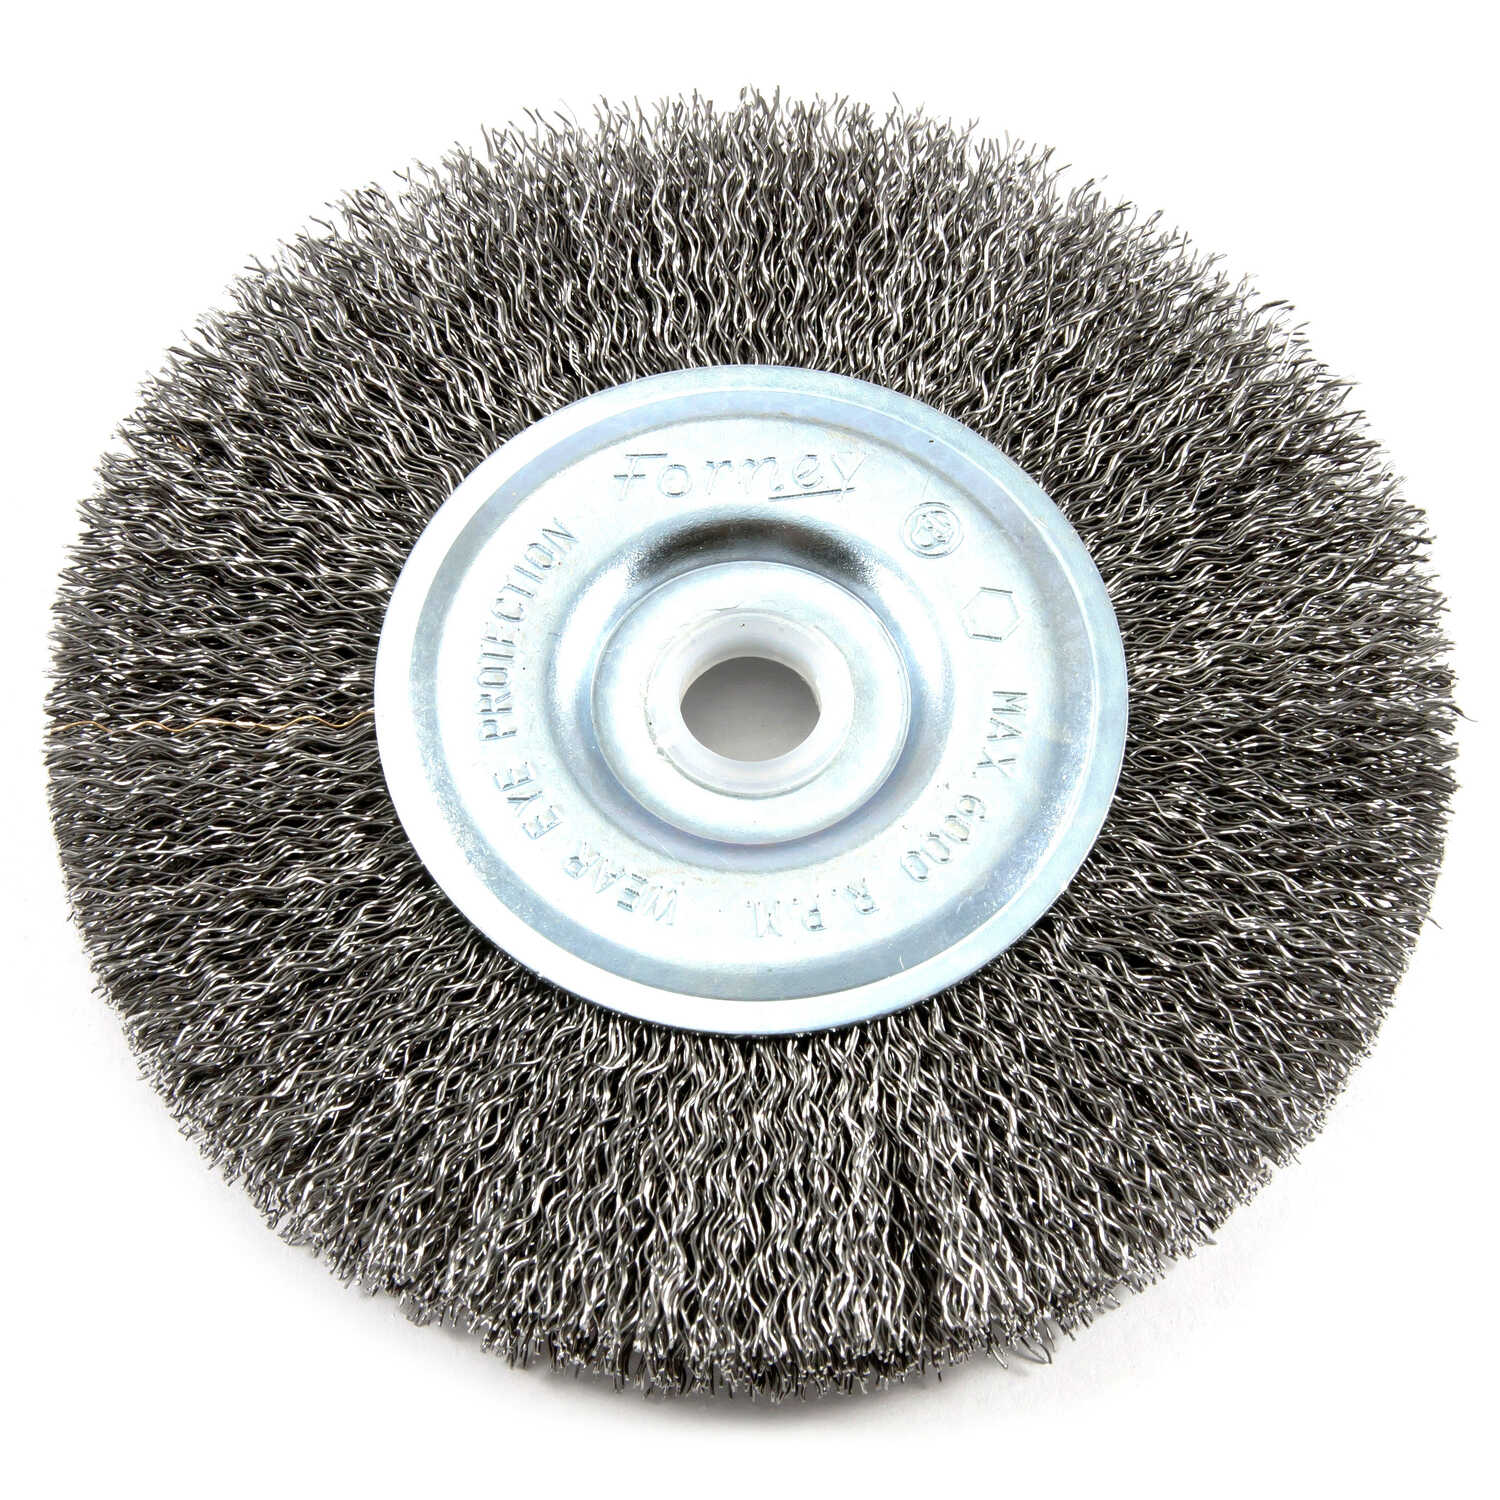 Forney  5 in. Crimped  Wire Wheel Brush  Metal  6000 rpm 1 pc.